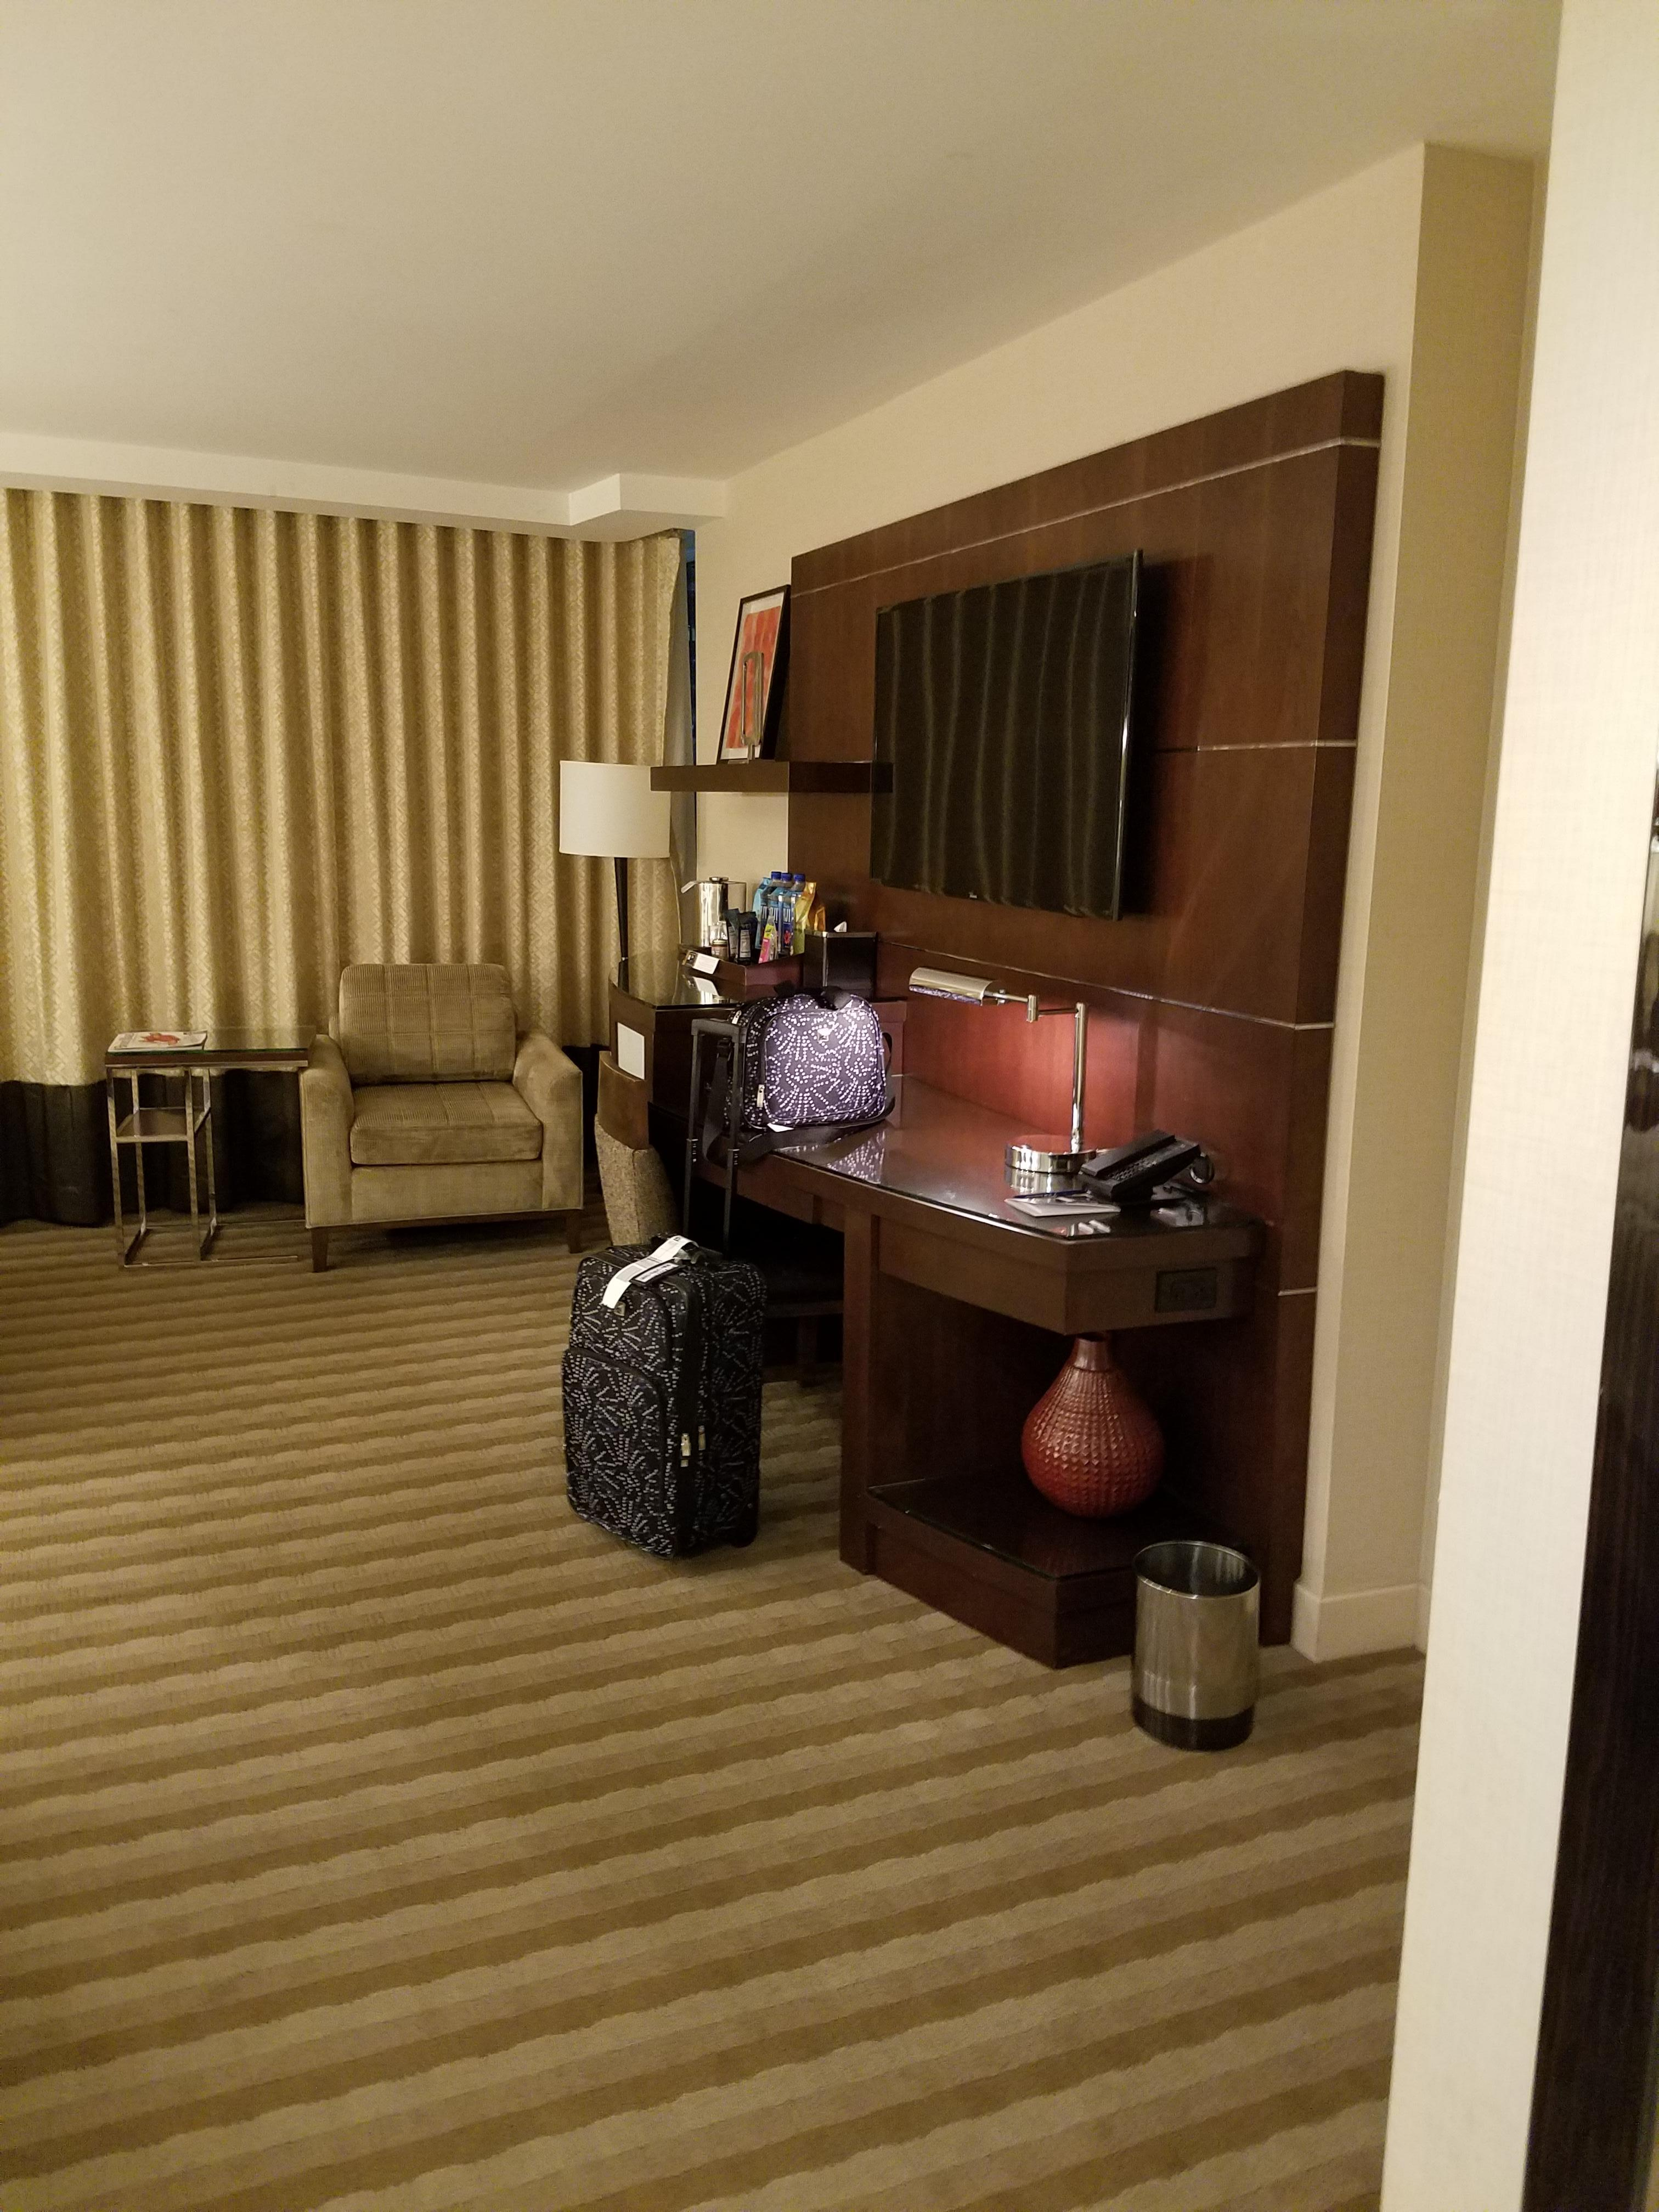 Across from bed area